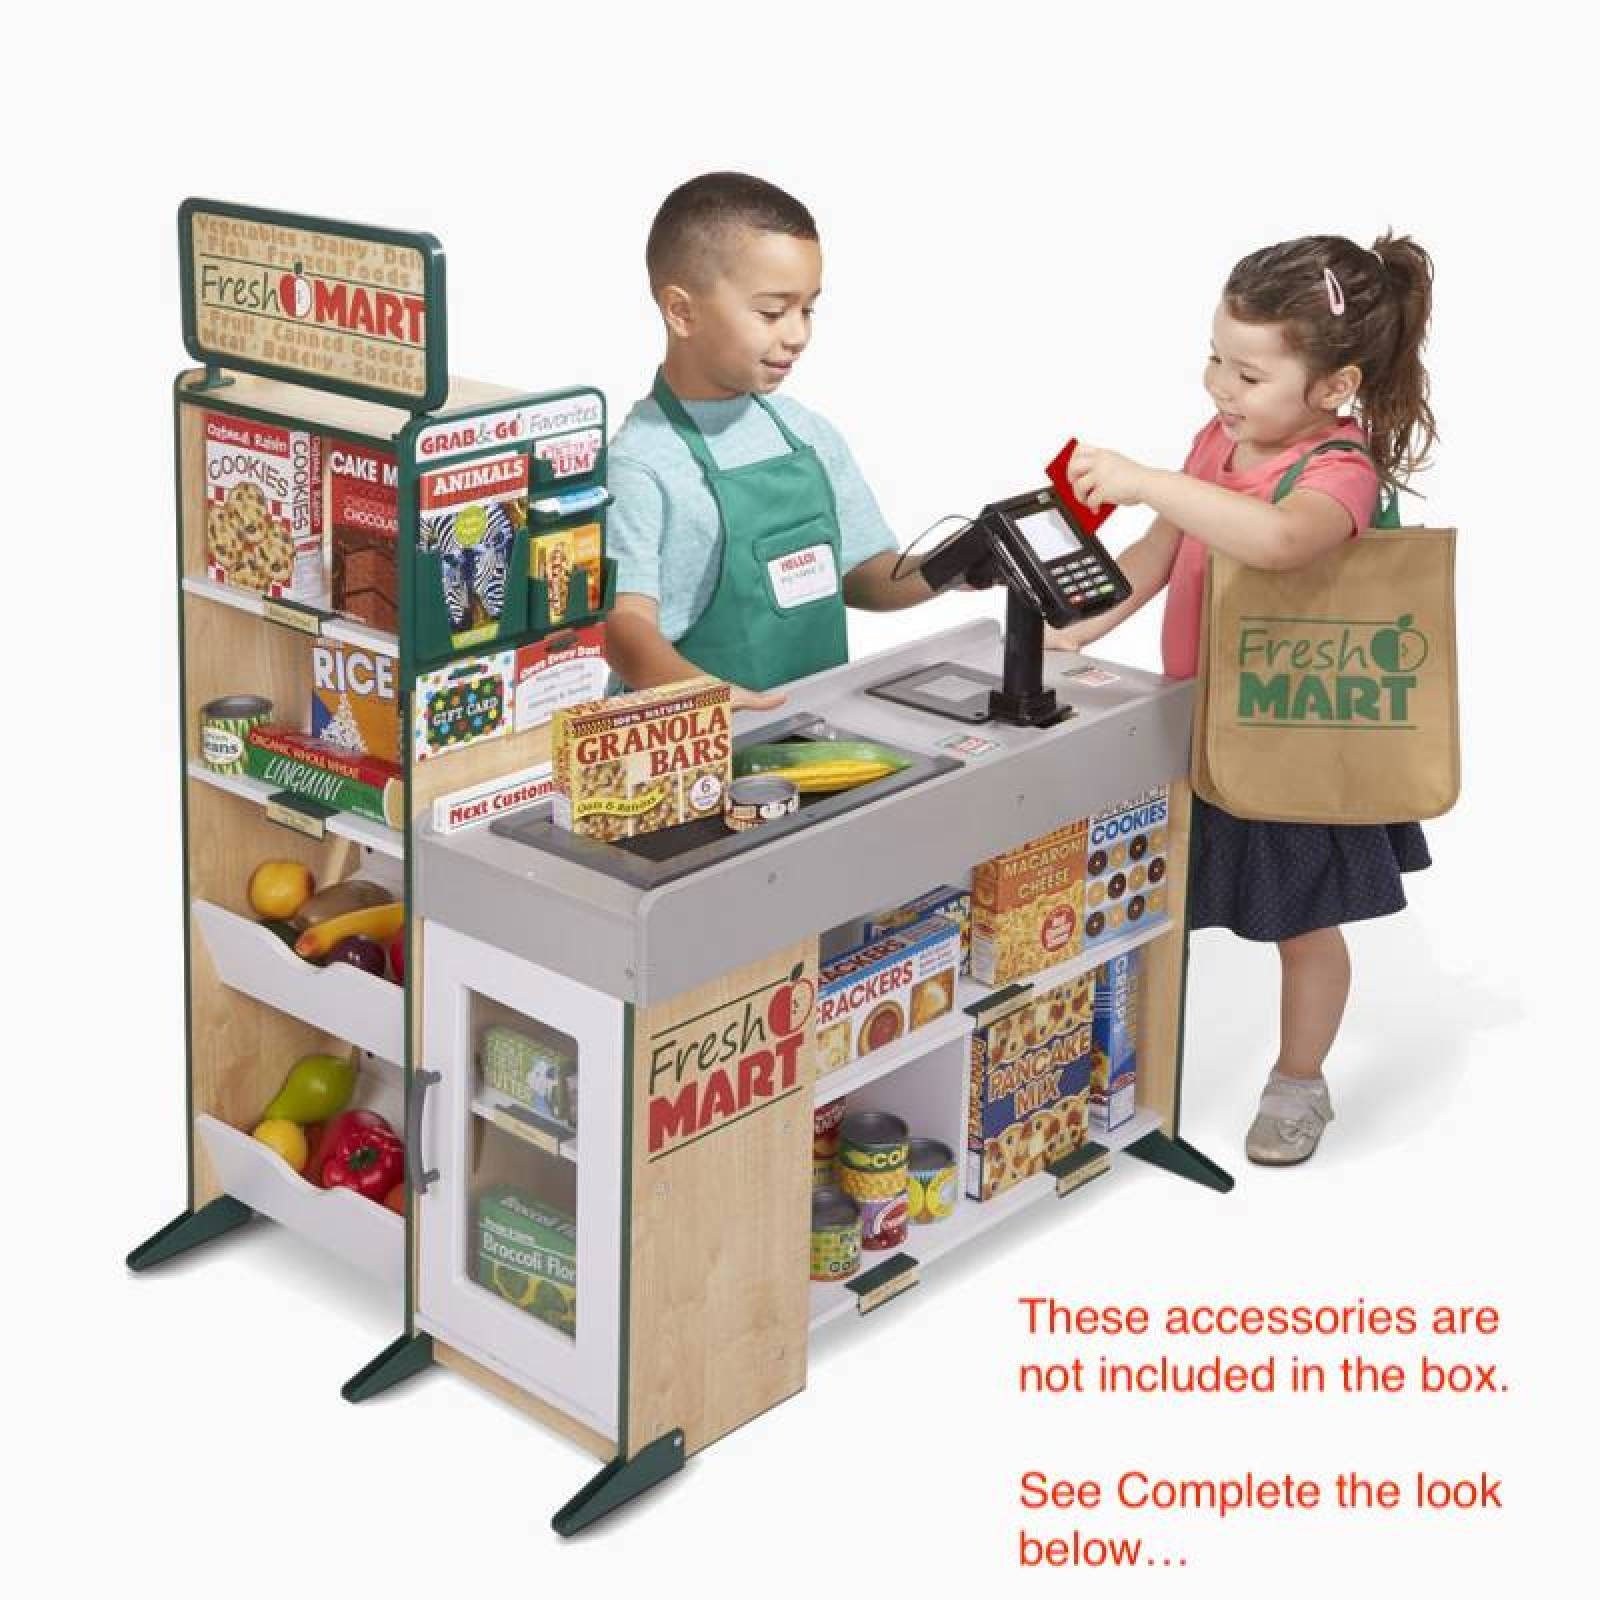 Fresh Mart Grocery Store Toy Set 3+ thumbnails